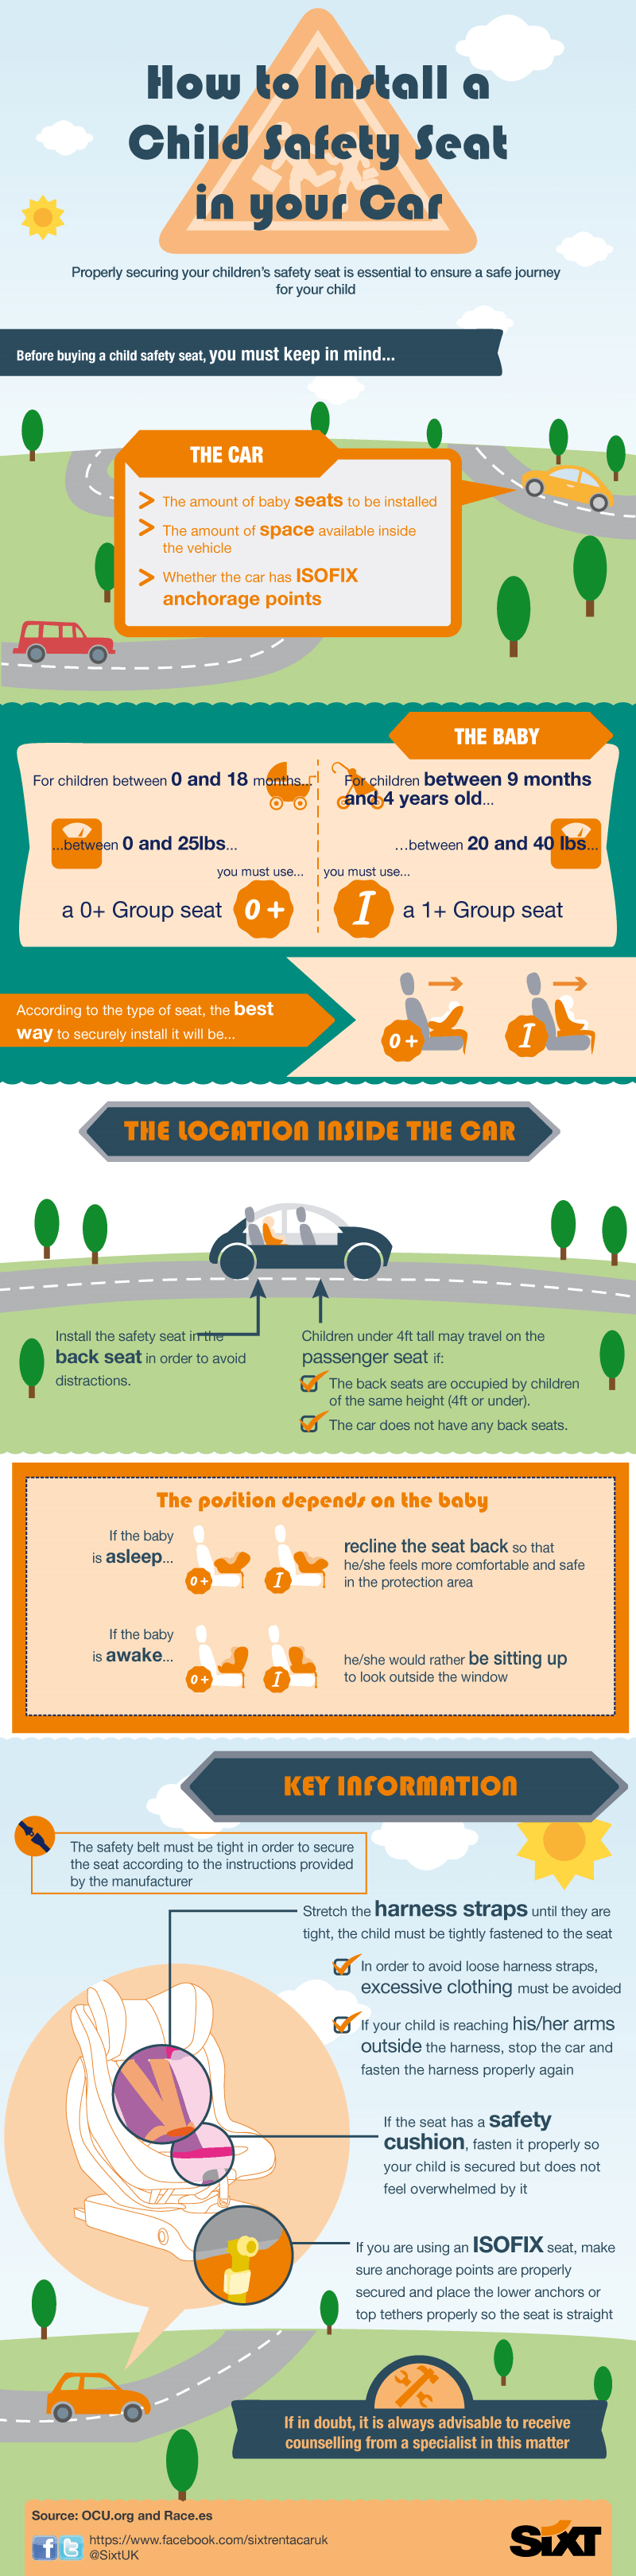 Infographic How to Install a Child Safety Seat in your